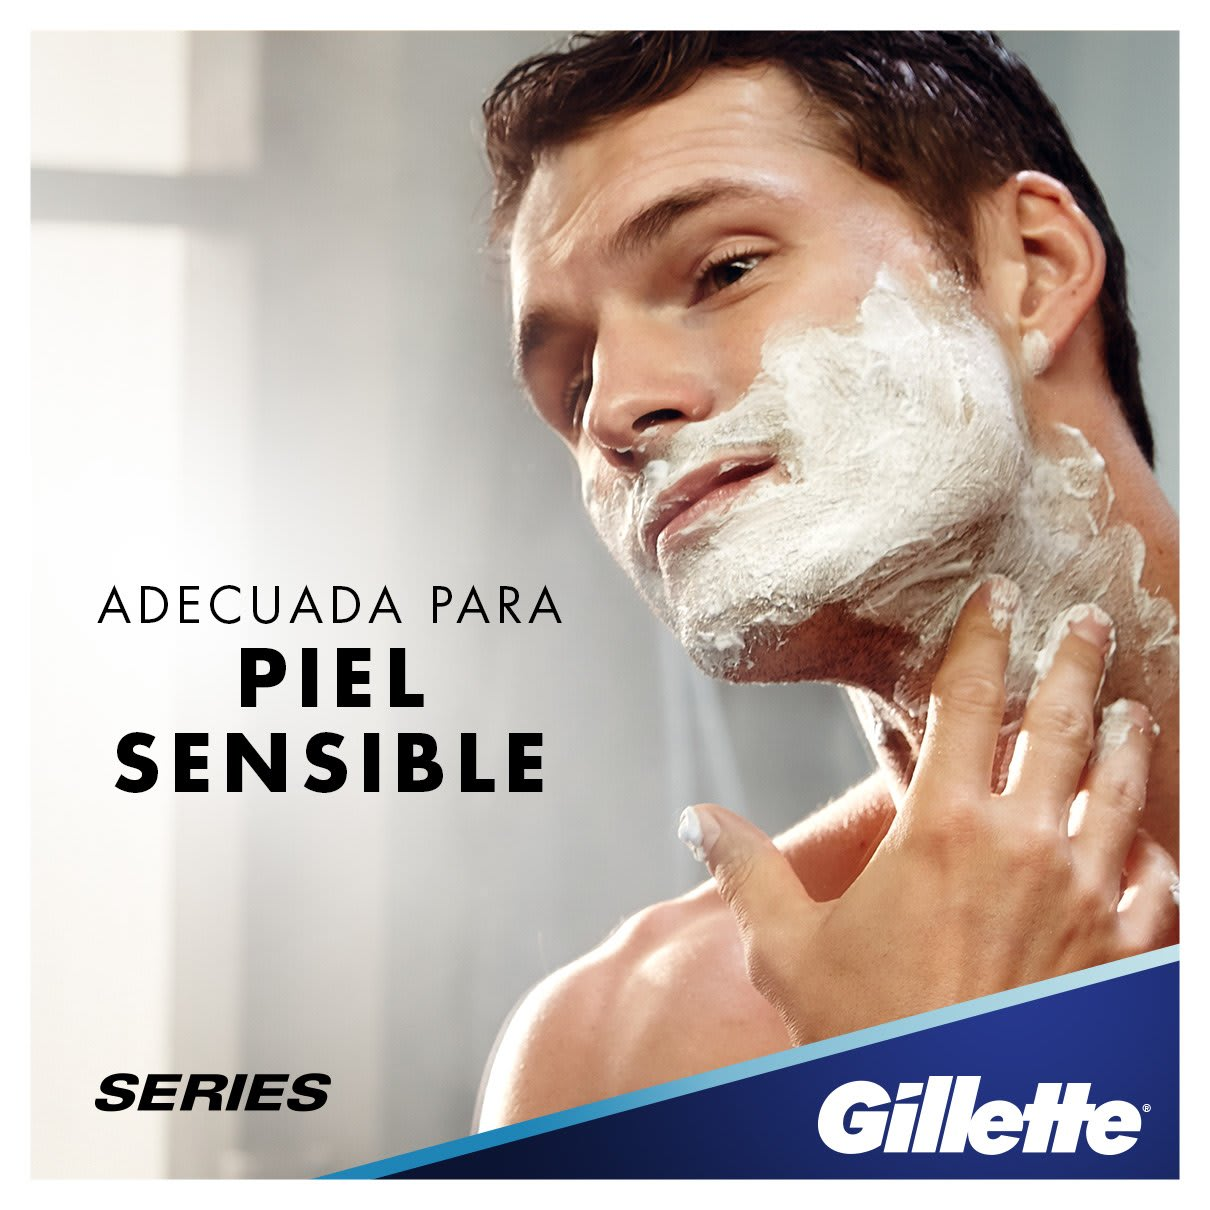 Adecuado para piel sensible | Gillette Series Sensitive Cool Gel De Afeitado